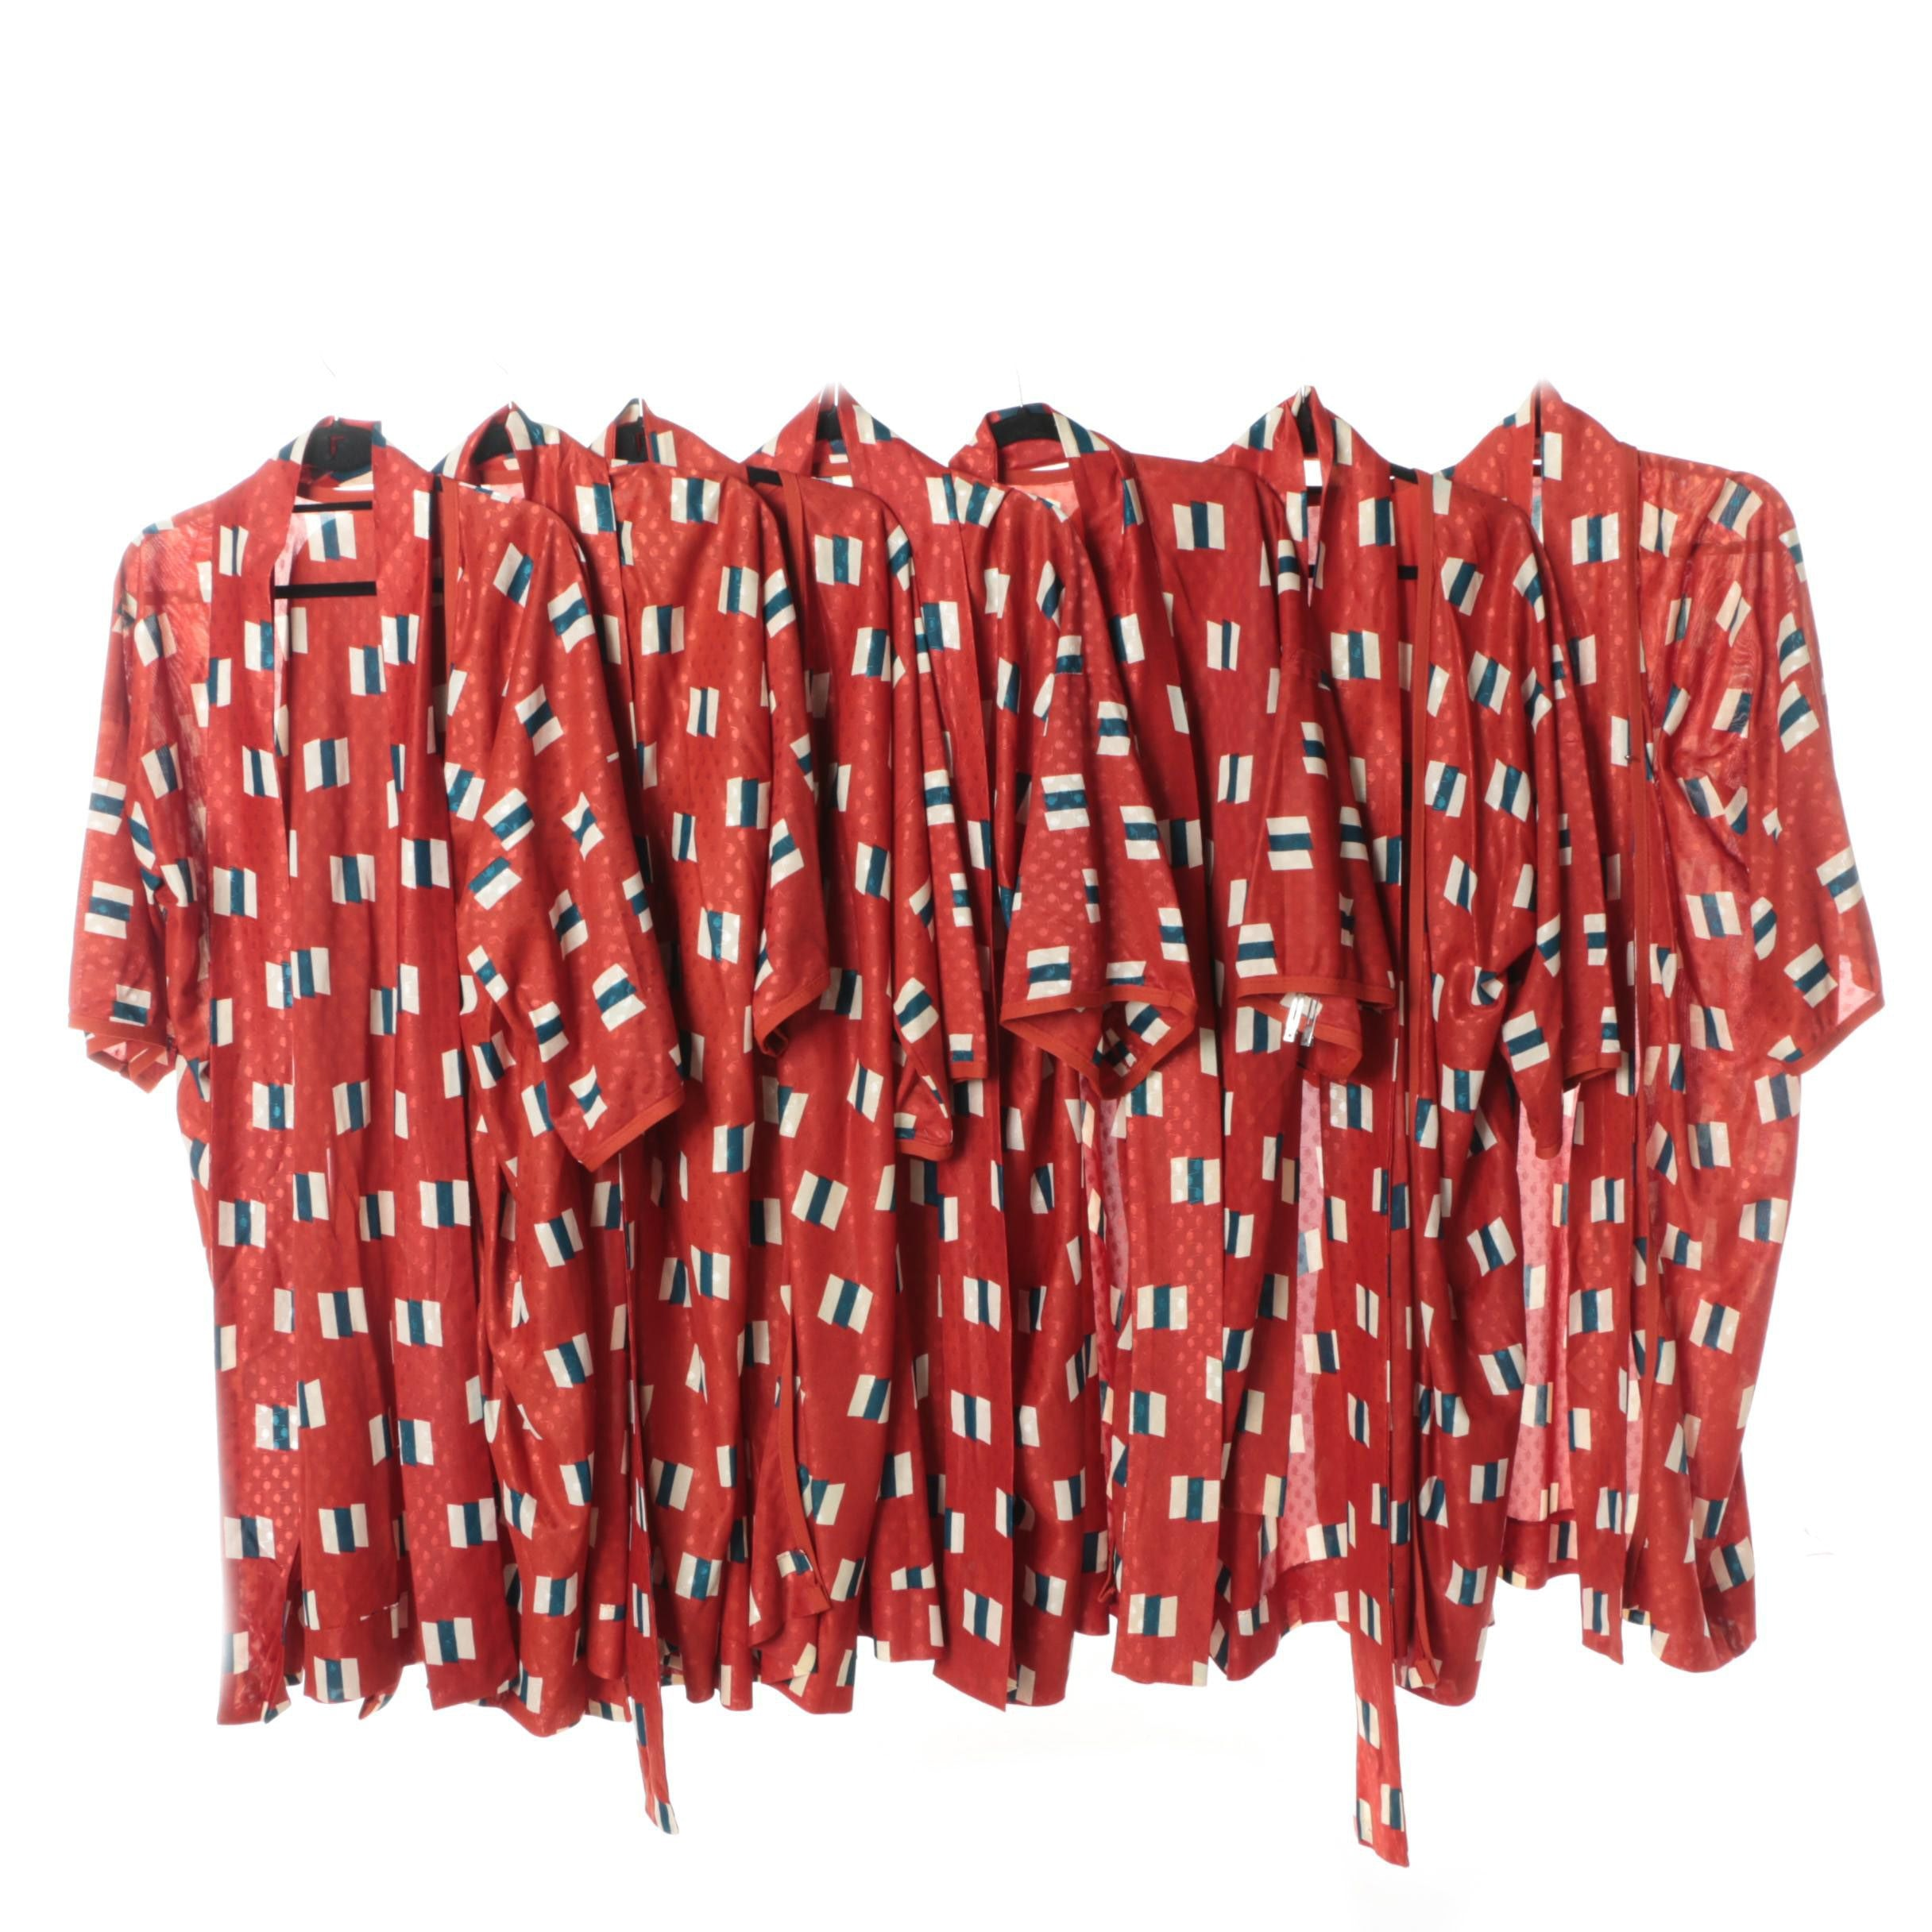 Women's Vintage Red Polyester Robes with Geometric Prints